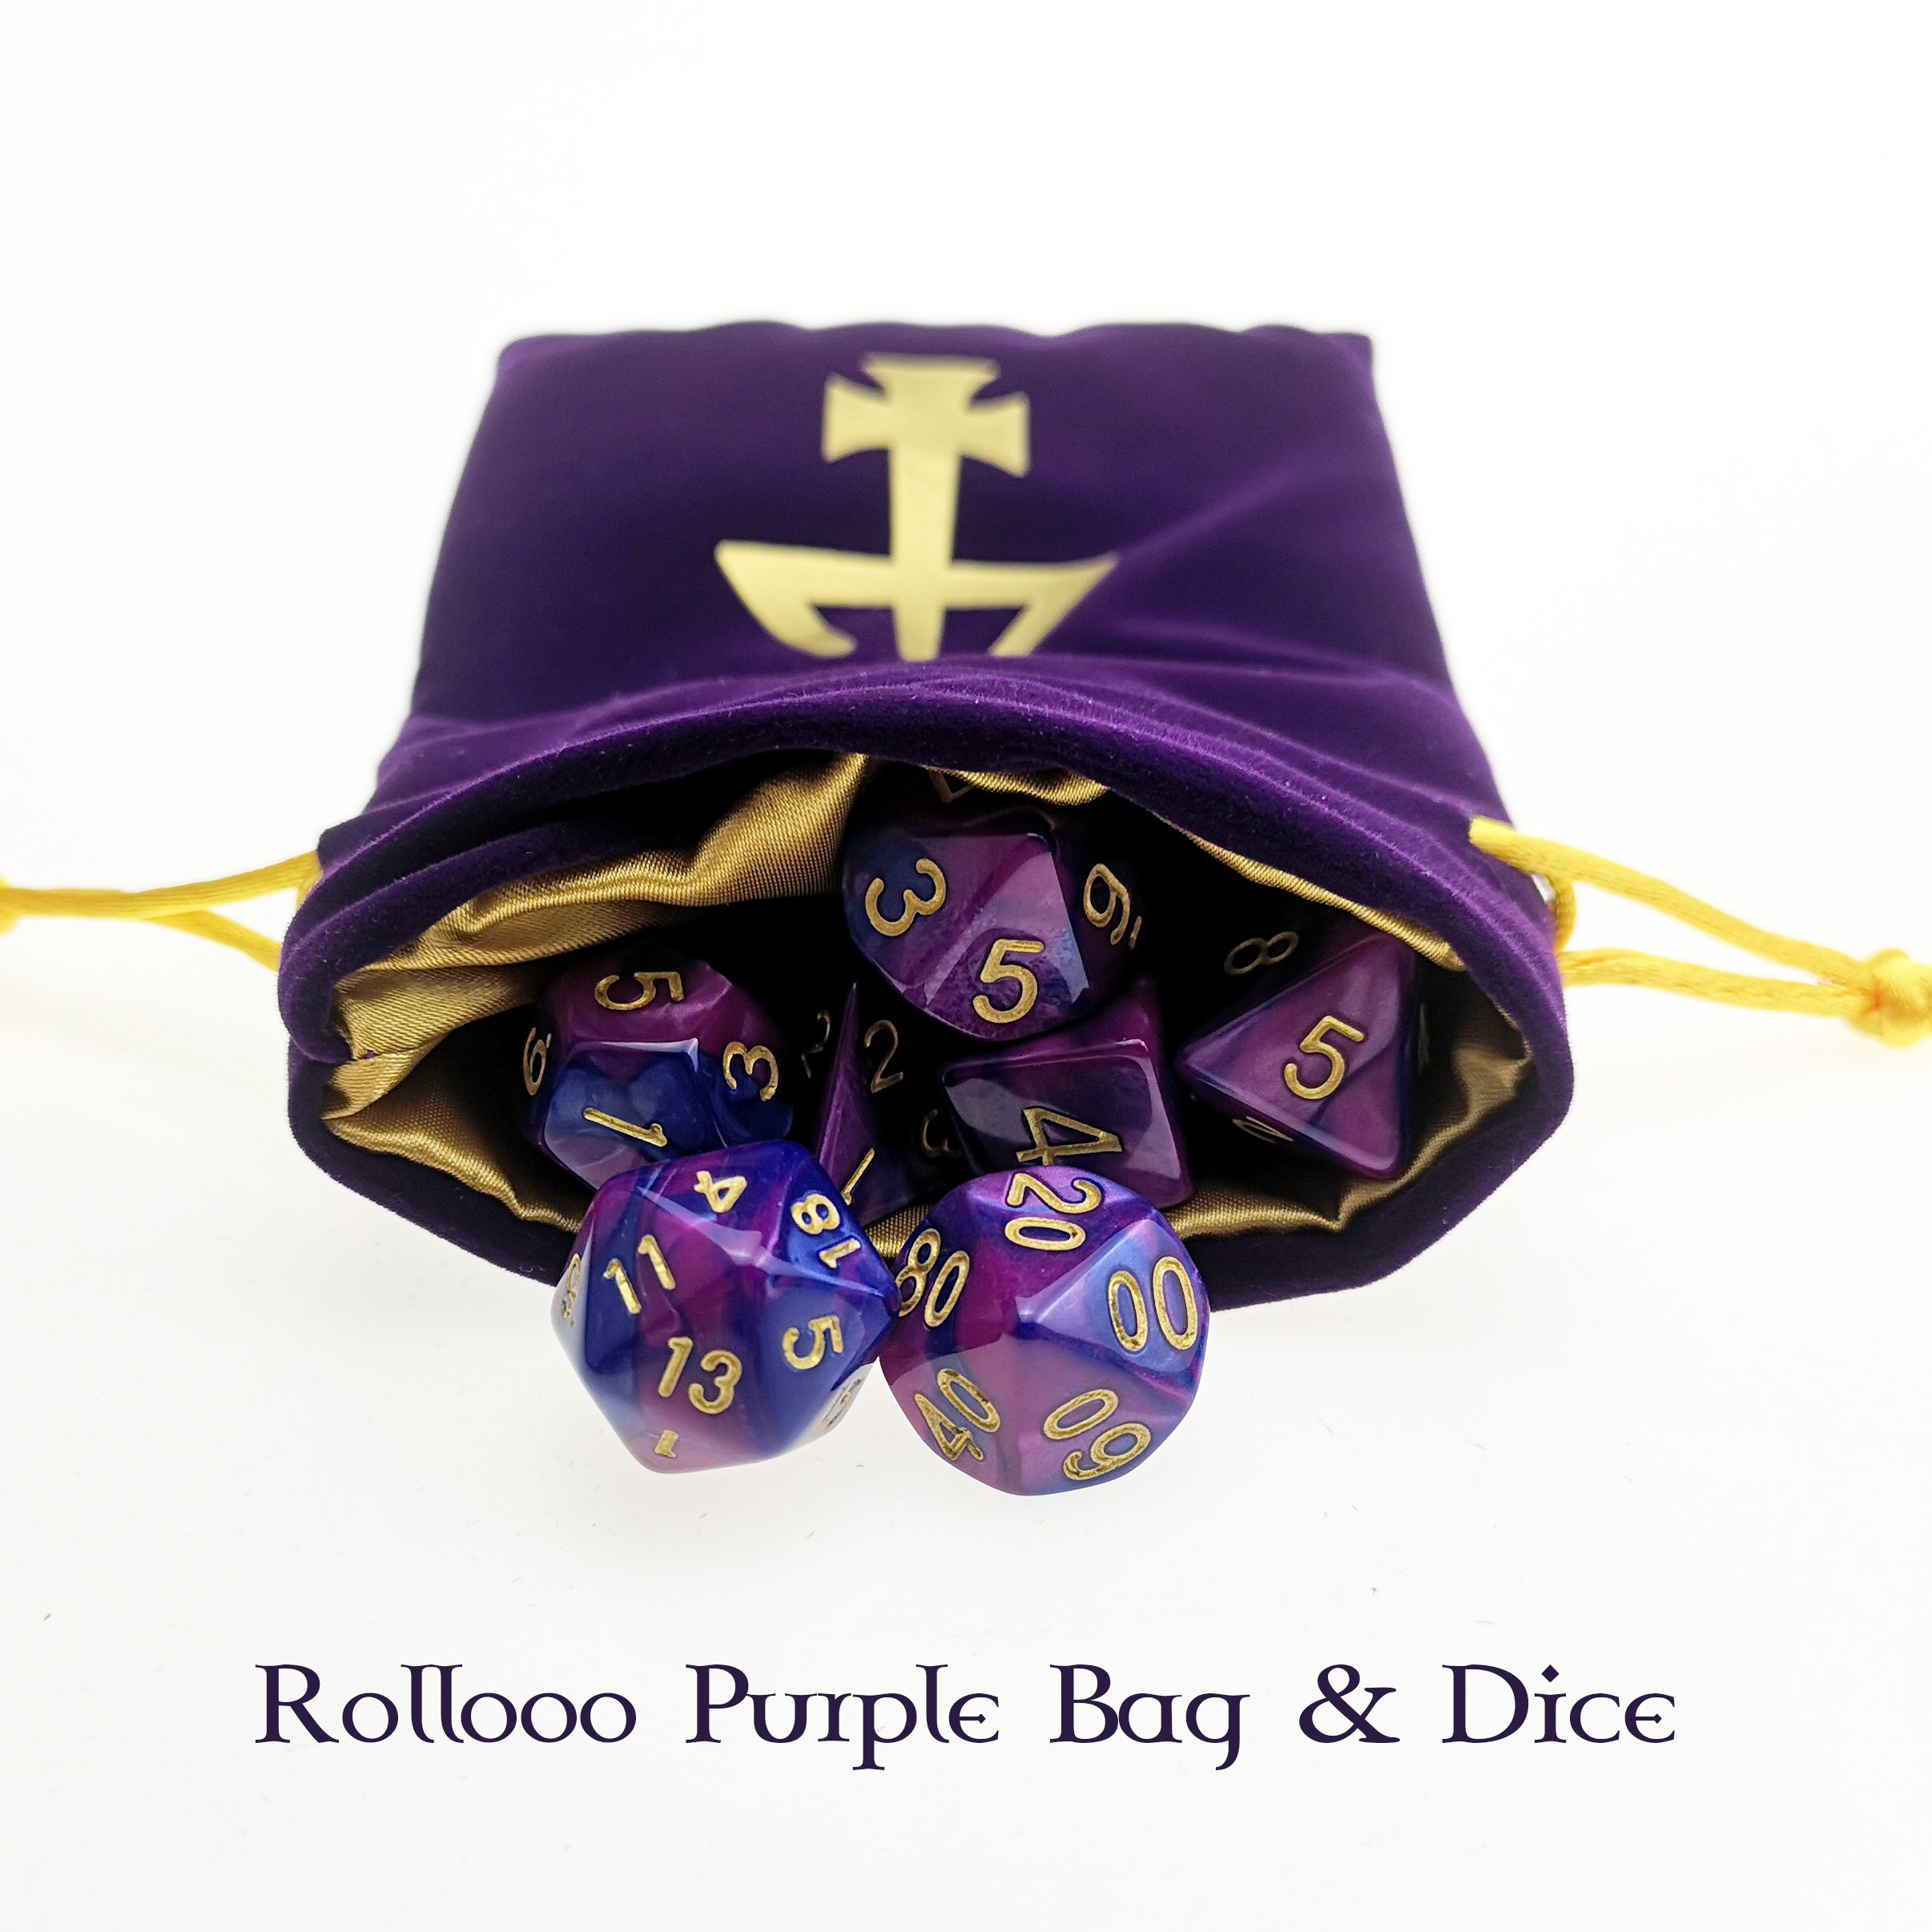 Rollooo Purple Bag & Dice Set With Customized Logo